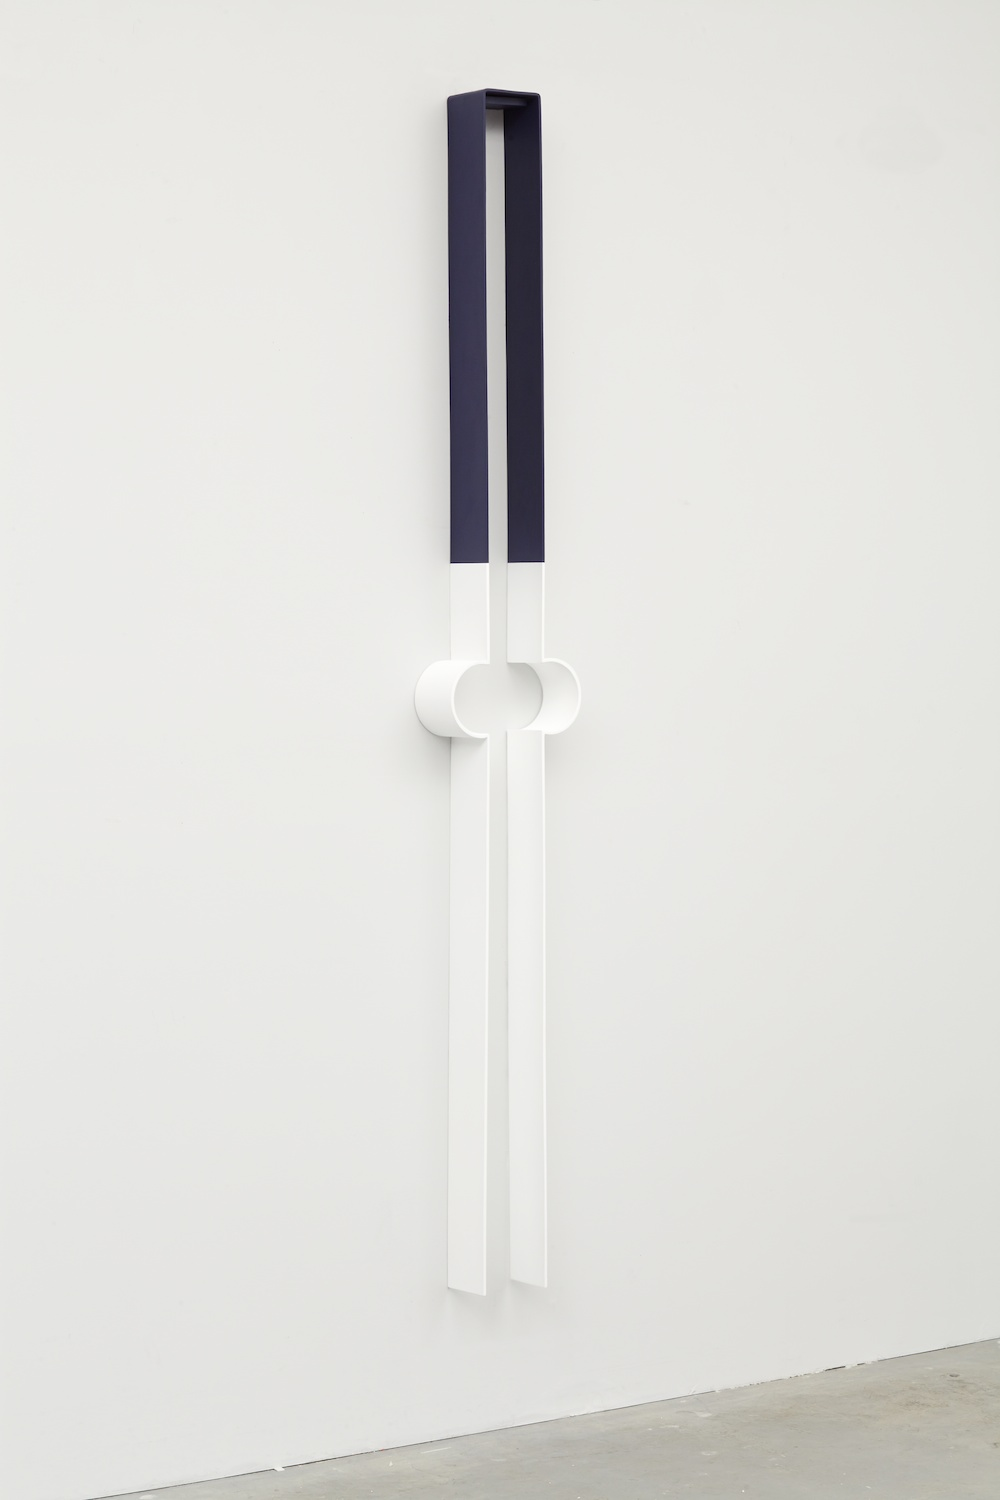 Lisa Williamson  Bump, Bob  2013 Acrylic on powder-coated steel 80h x 14w x 4d in LW120